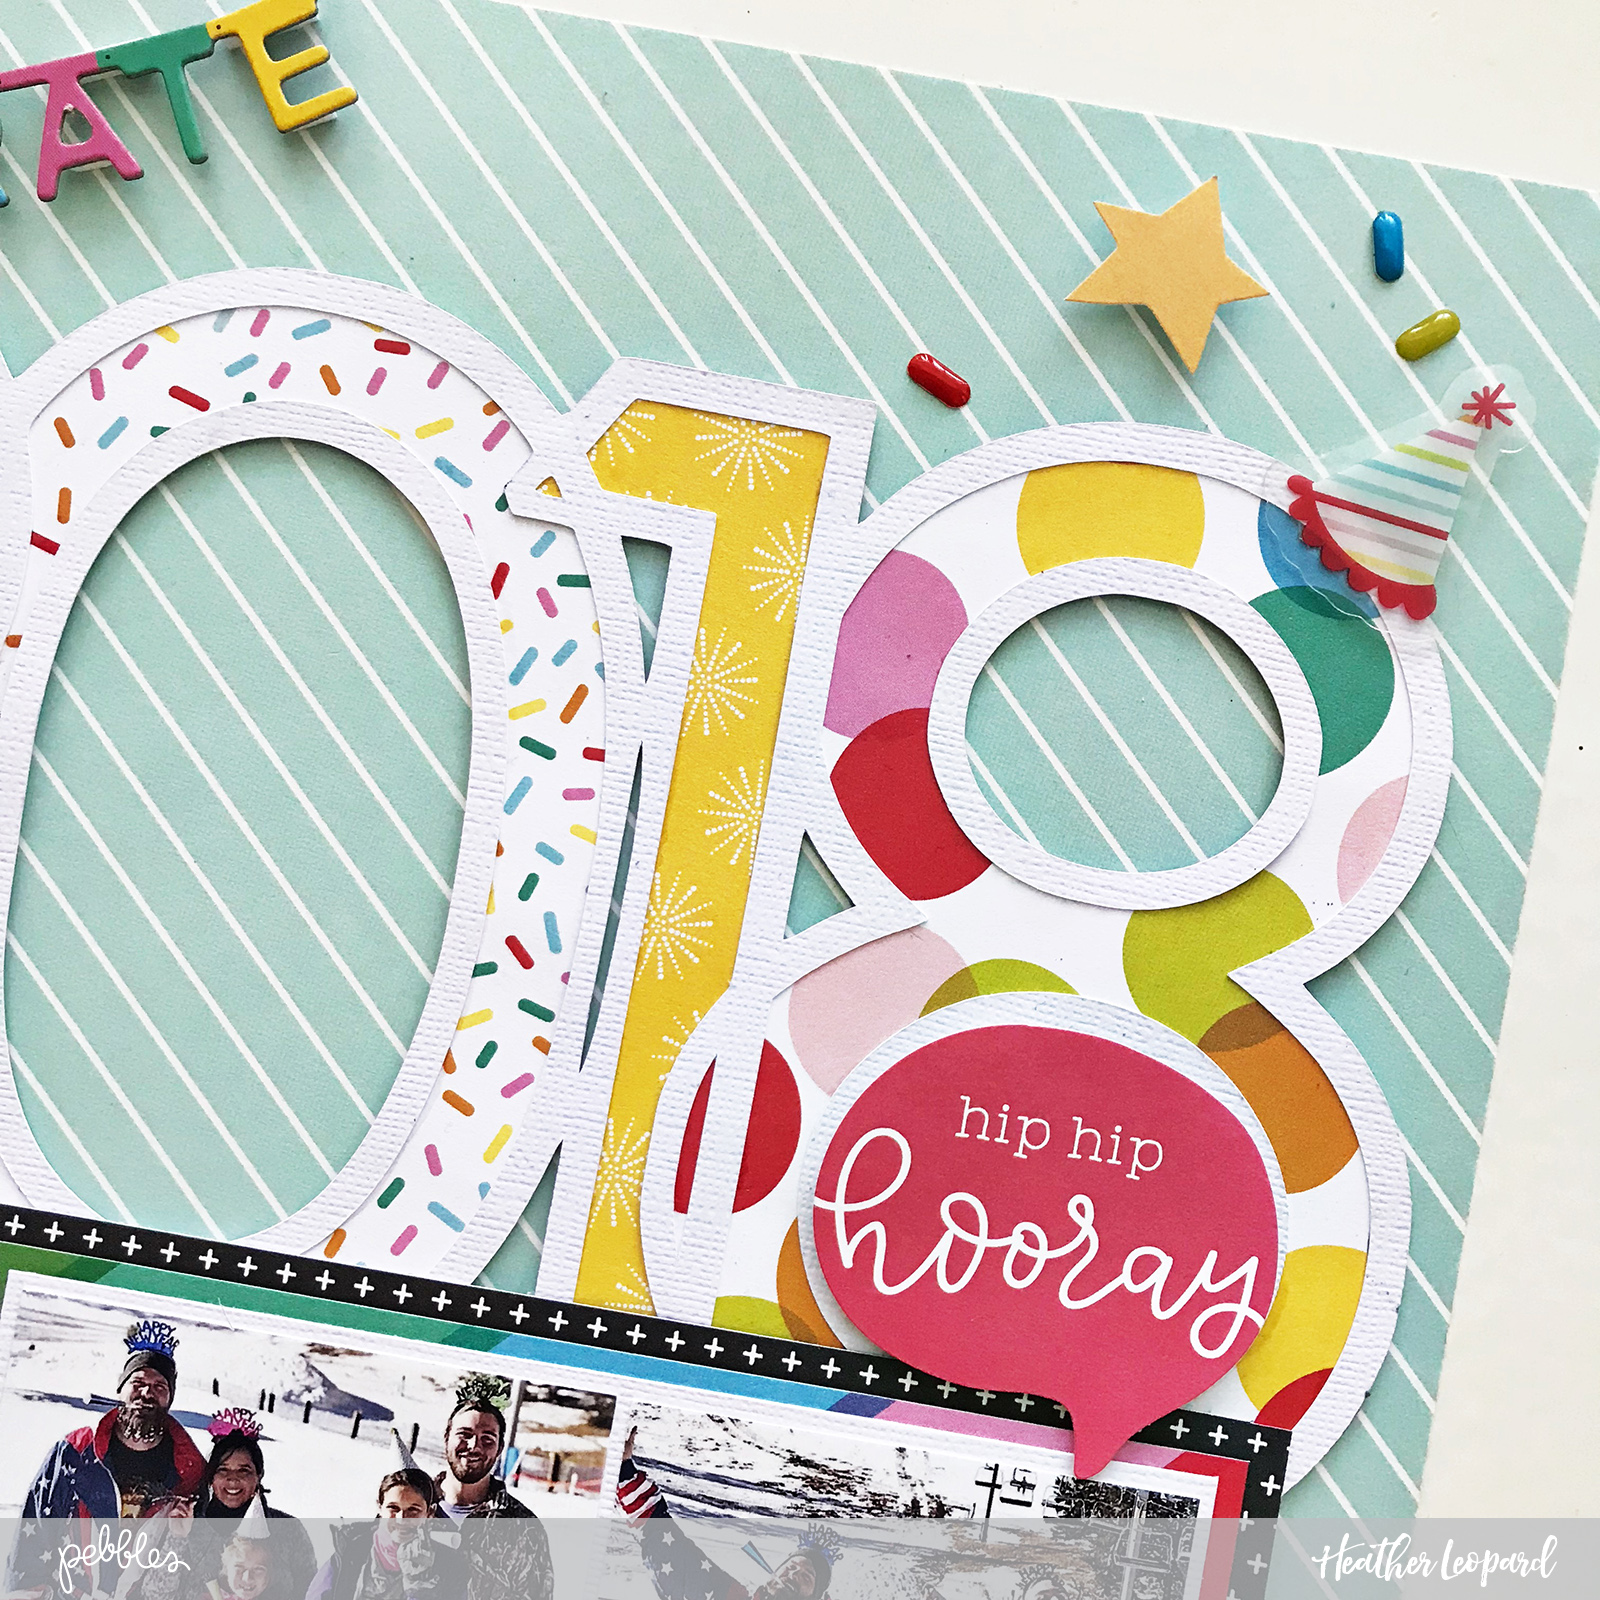 2018 New Years Scrapbook Layout and free cut file by @HeatherLeopard using @PebblesInc #happyhooray and #girlsquad collections #madewithpebbles #silhouettecameo